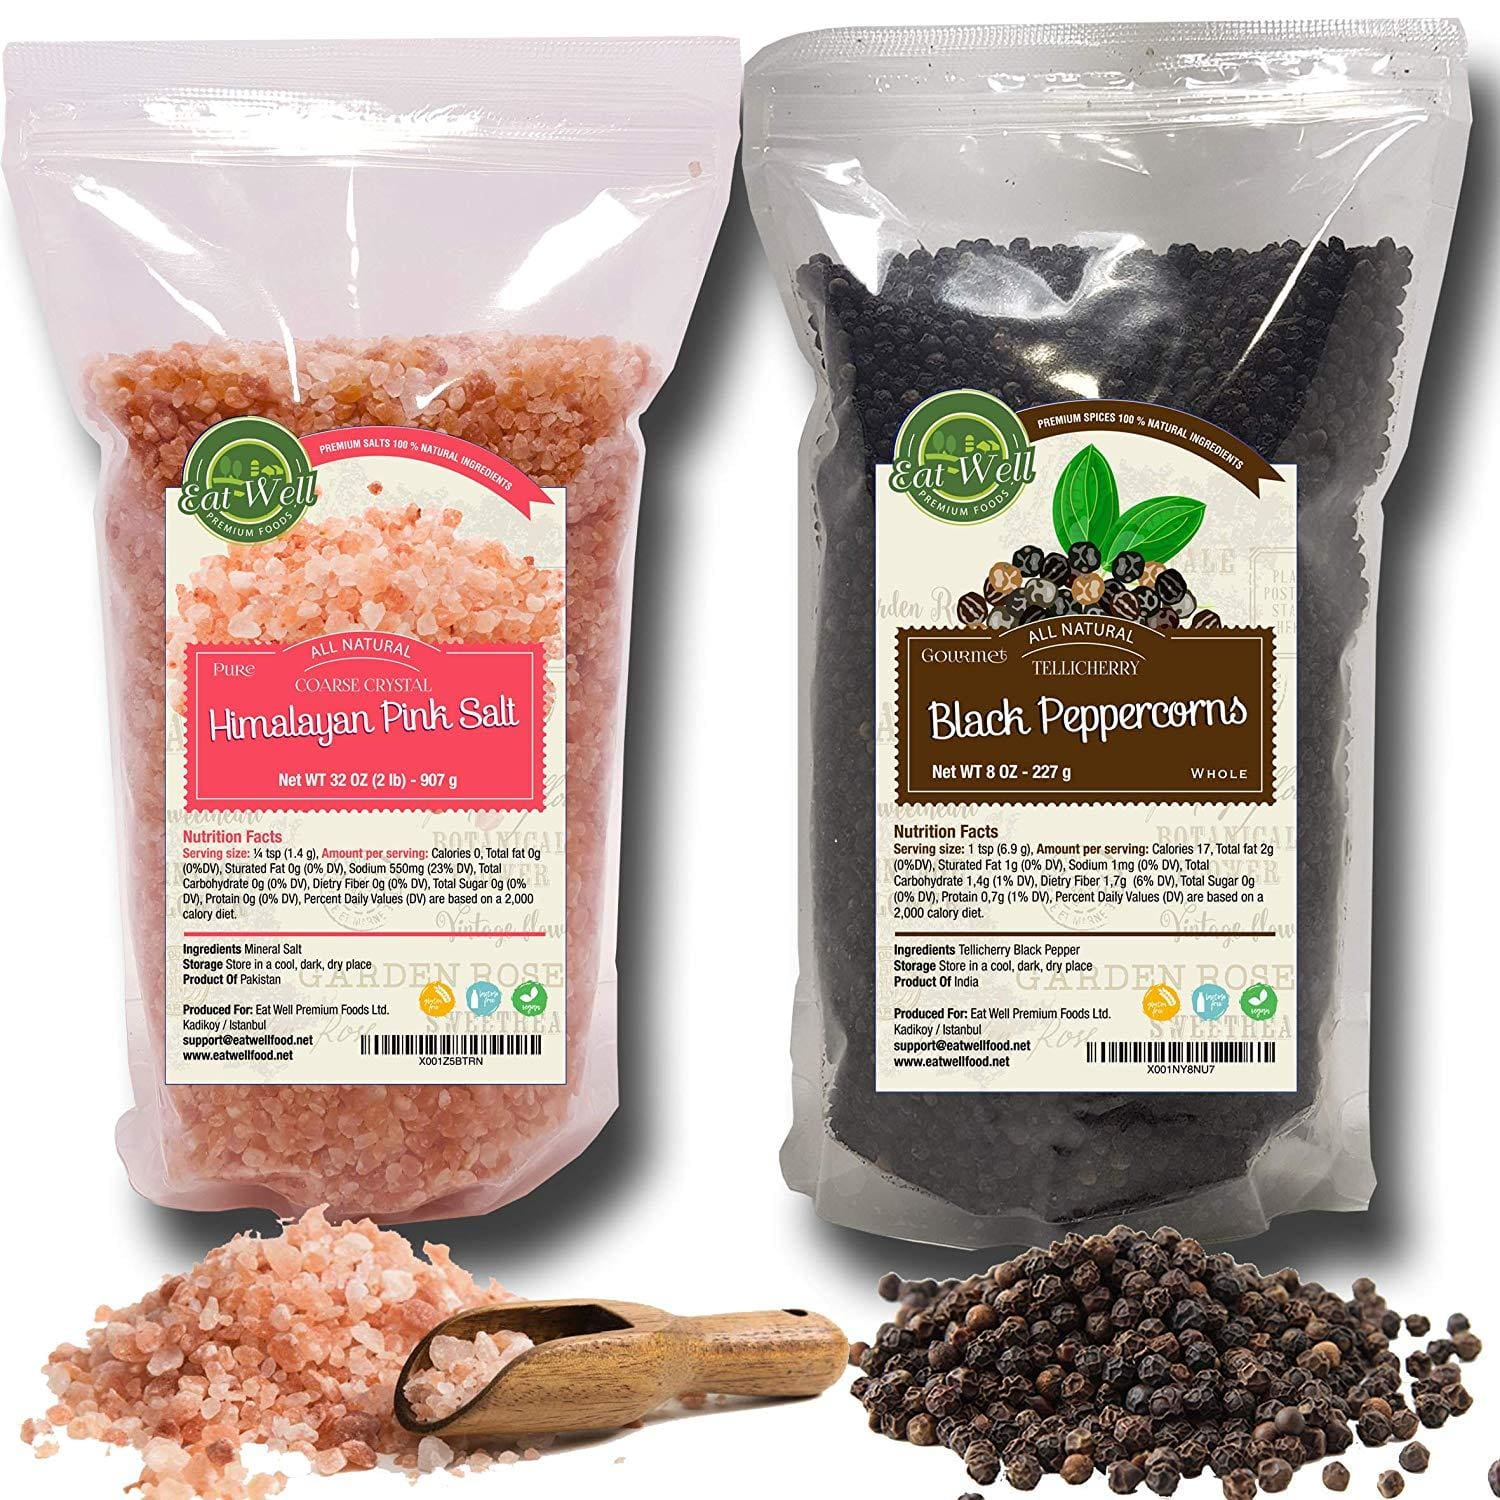 Black Peppercorns 12oz | Himalayan Pink Salt (Coarse Grain) 2 lbs